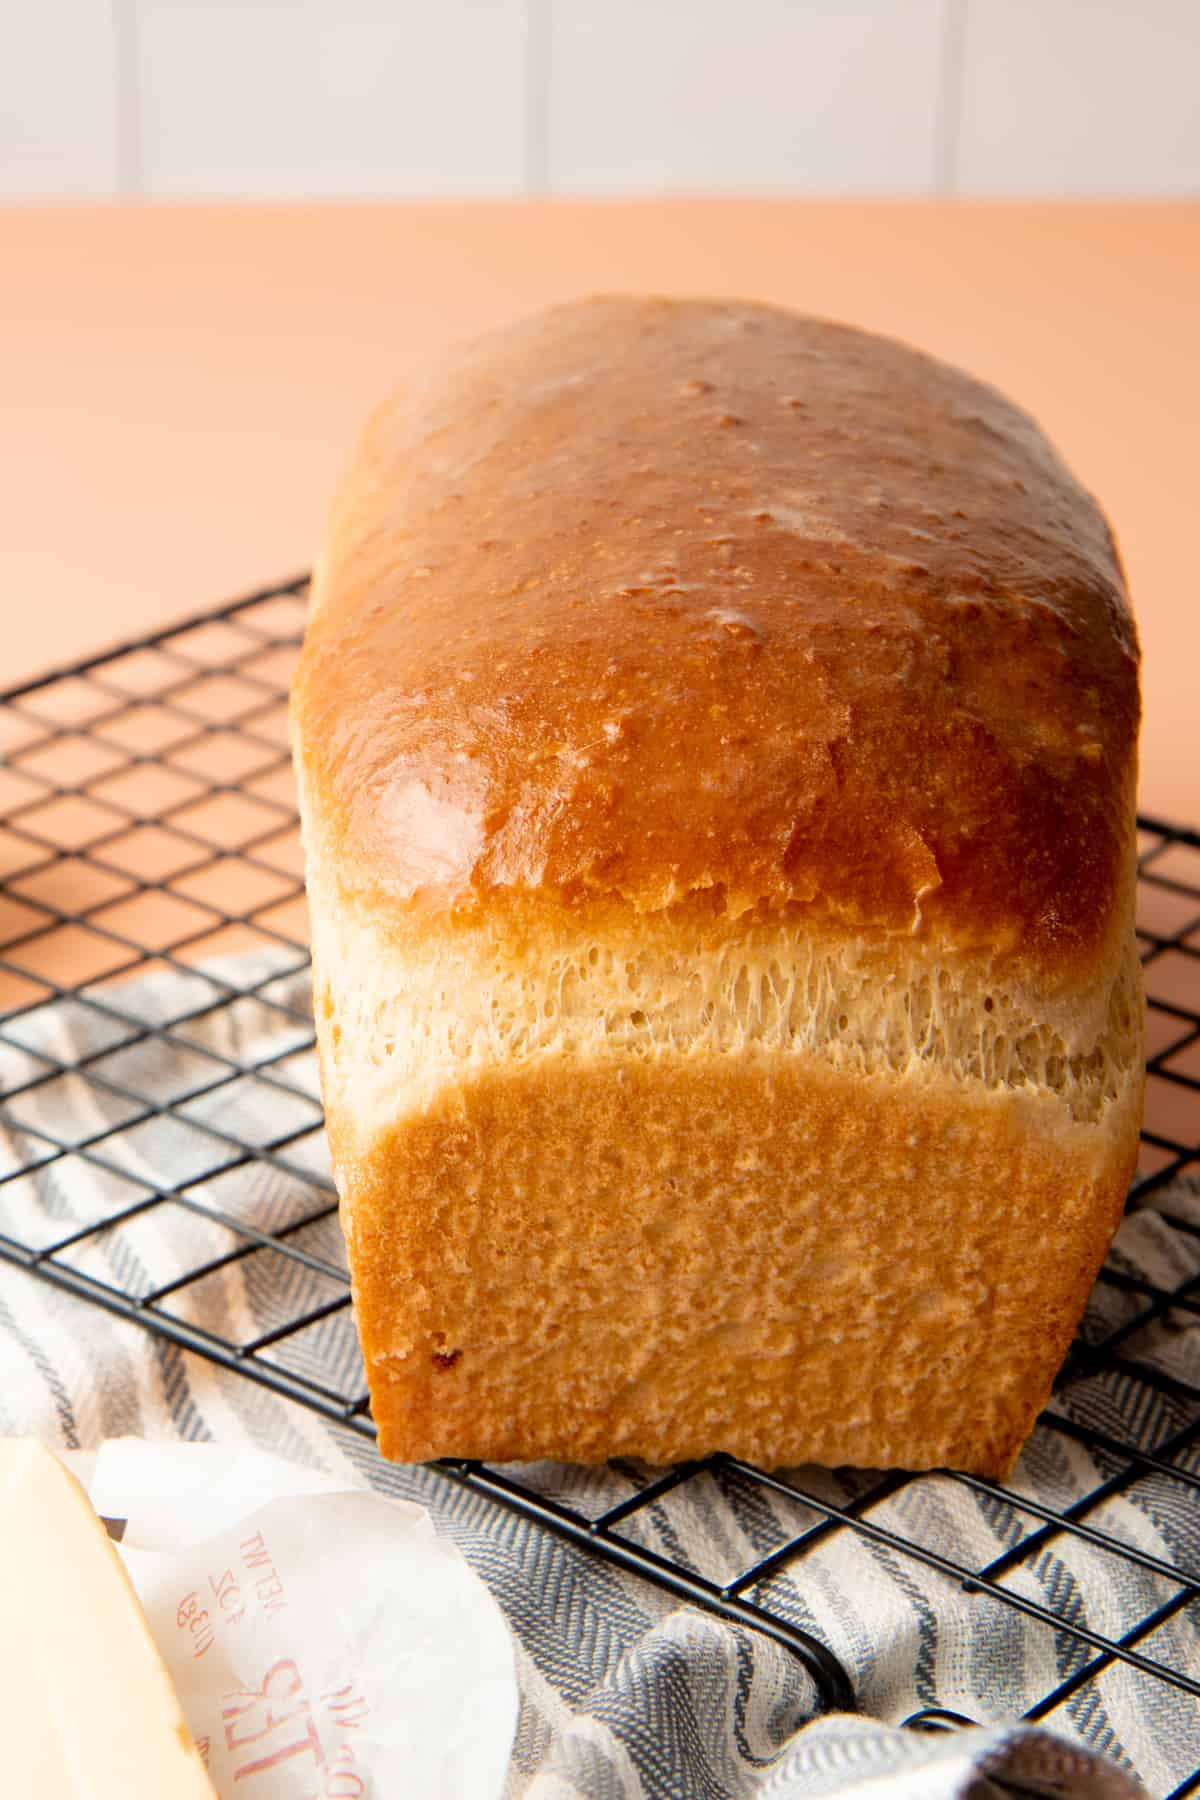 A baked loaf of bread sits on a wire rack.